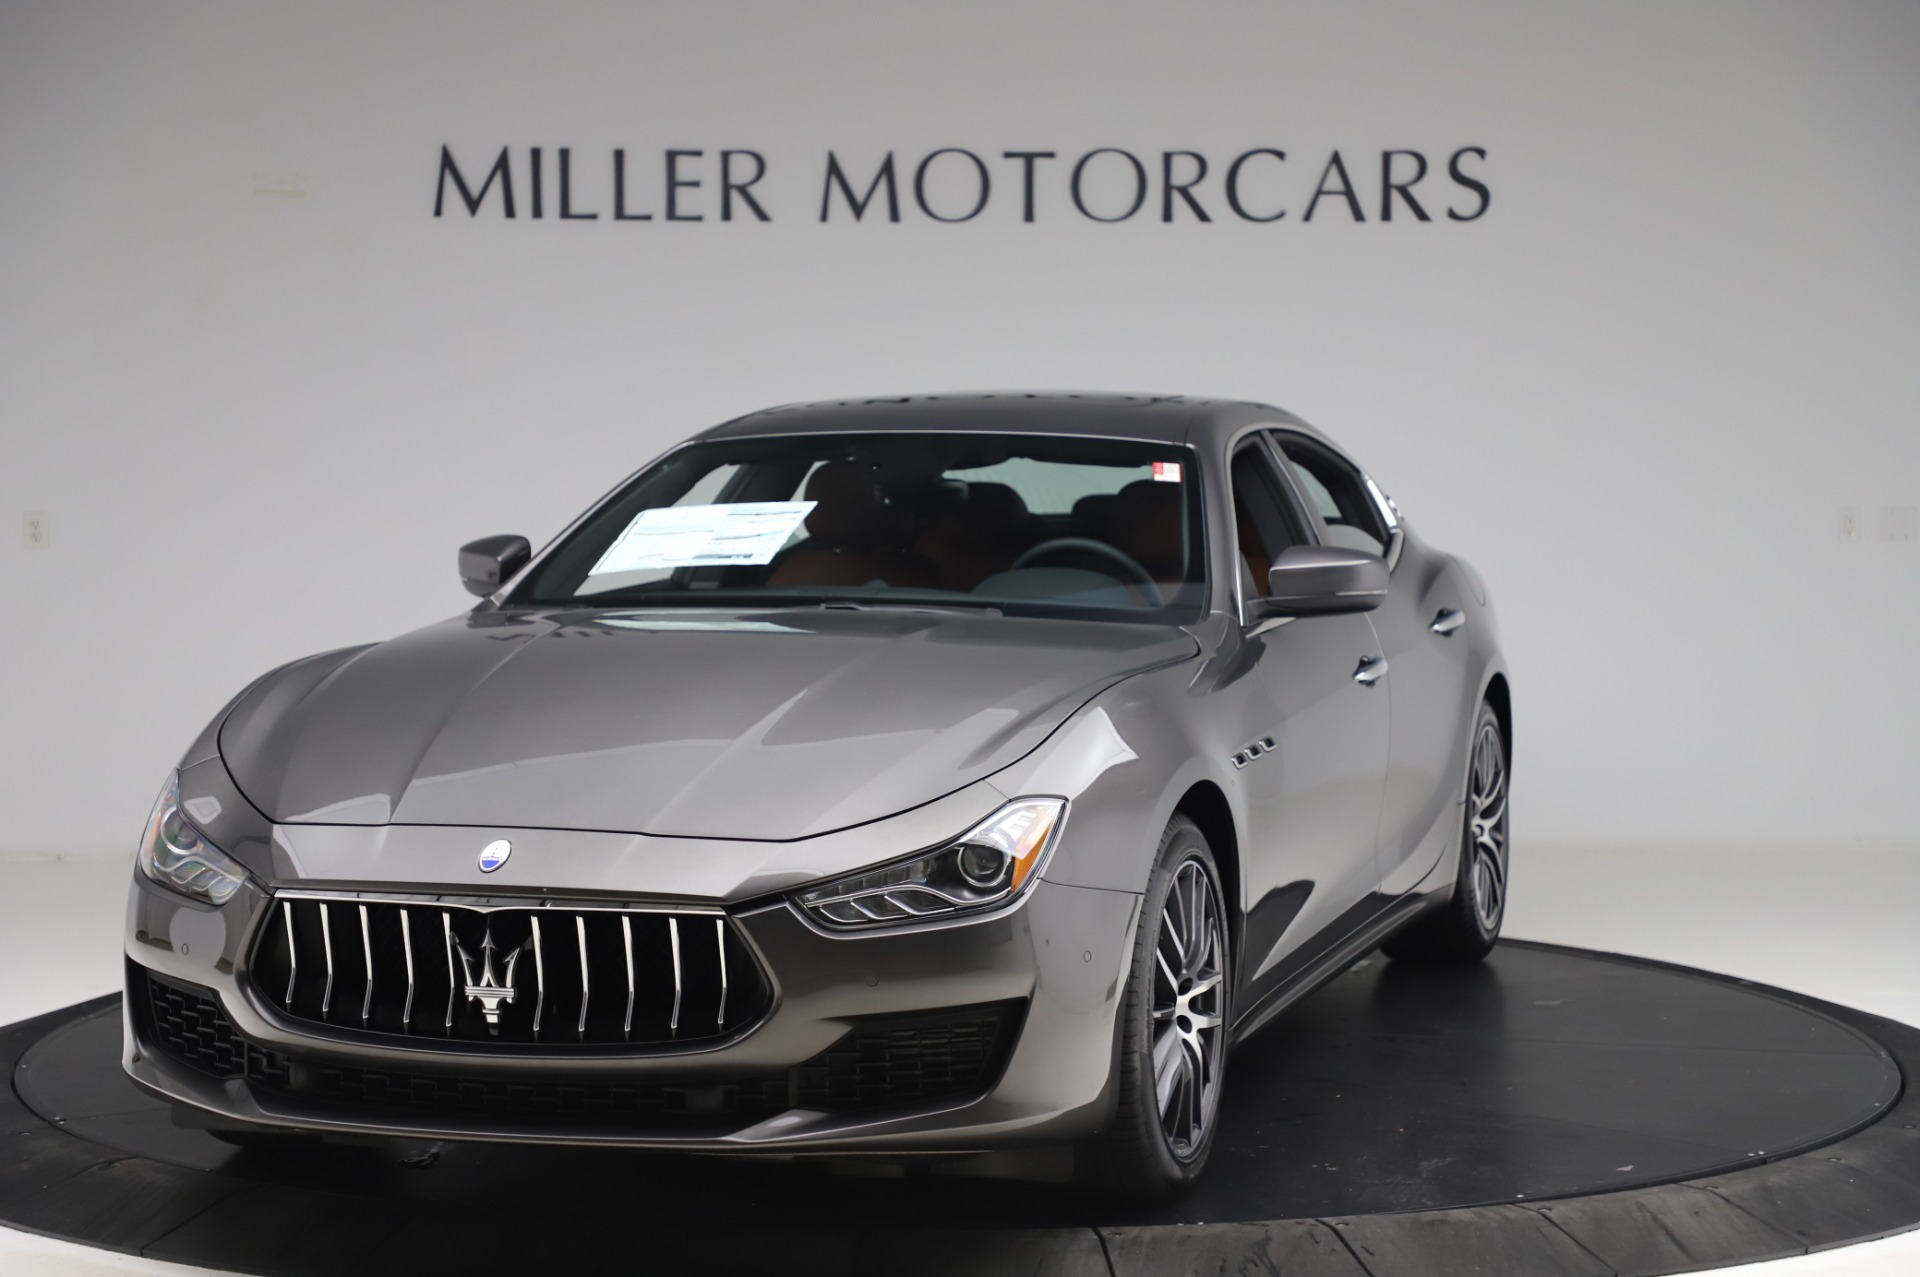 New 2020 Maserati Ghibli S Q4 for sale $82,385 at Pagani of Greenwich in Greenwich CT 06830 1